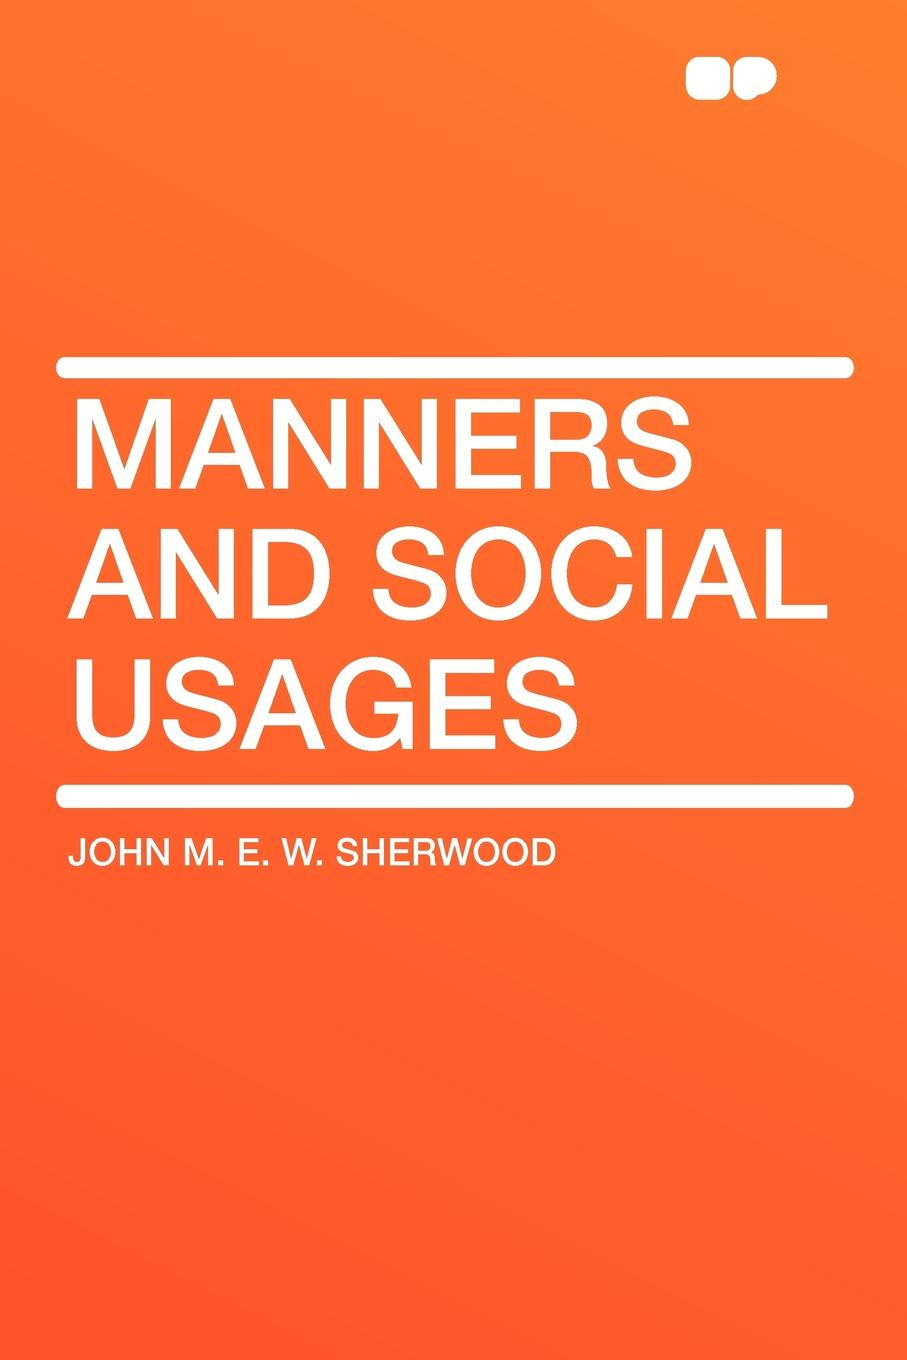 John M. E. W. Sherwood Manners and Social Usages